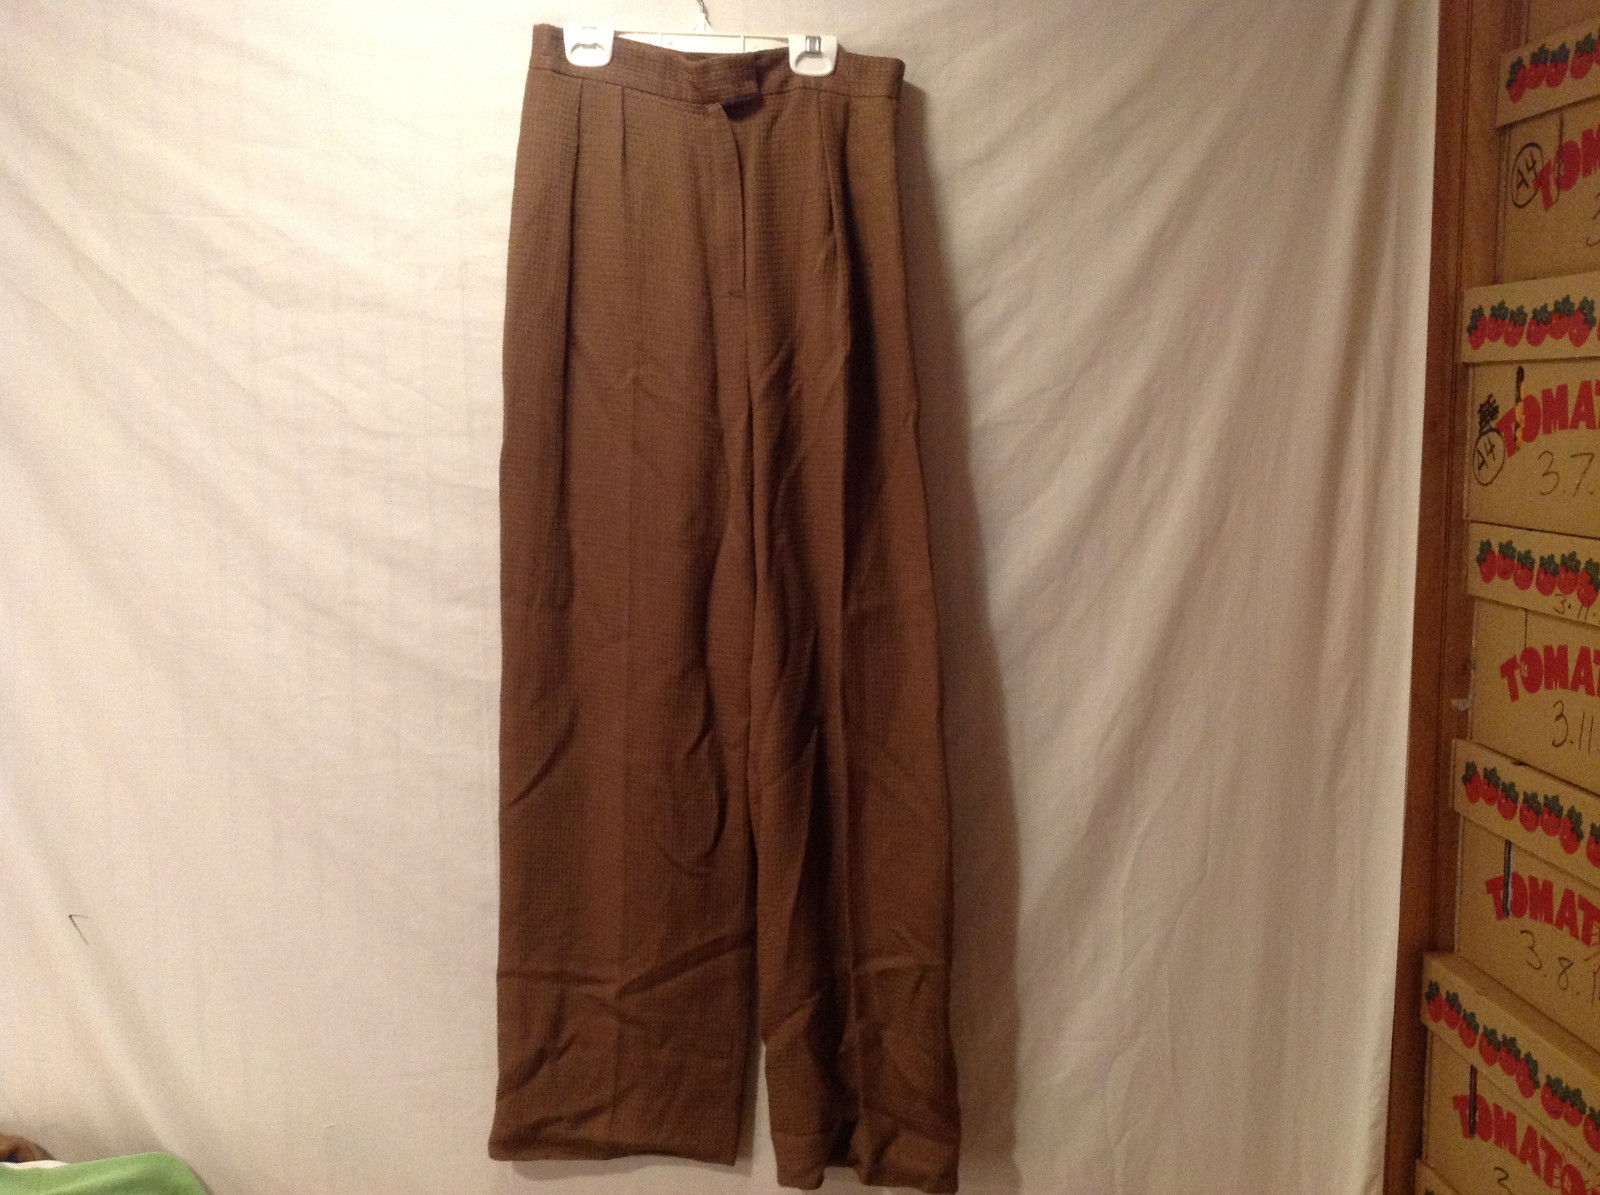 No Brand Women's Size 6 Trousers Pants Creased Leg Pleats Front Brown Twill Look